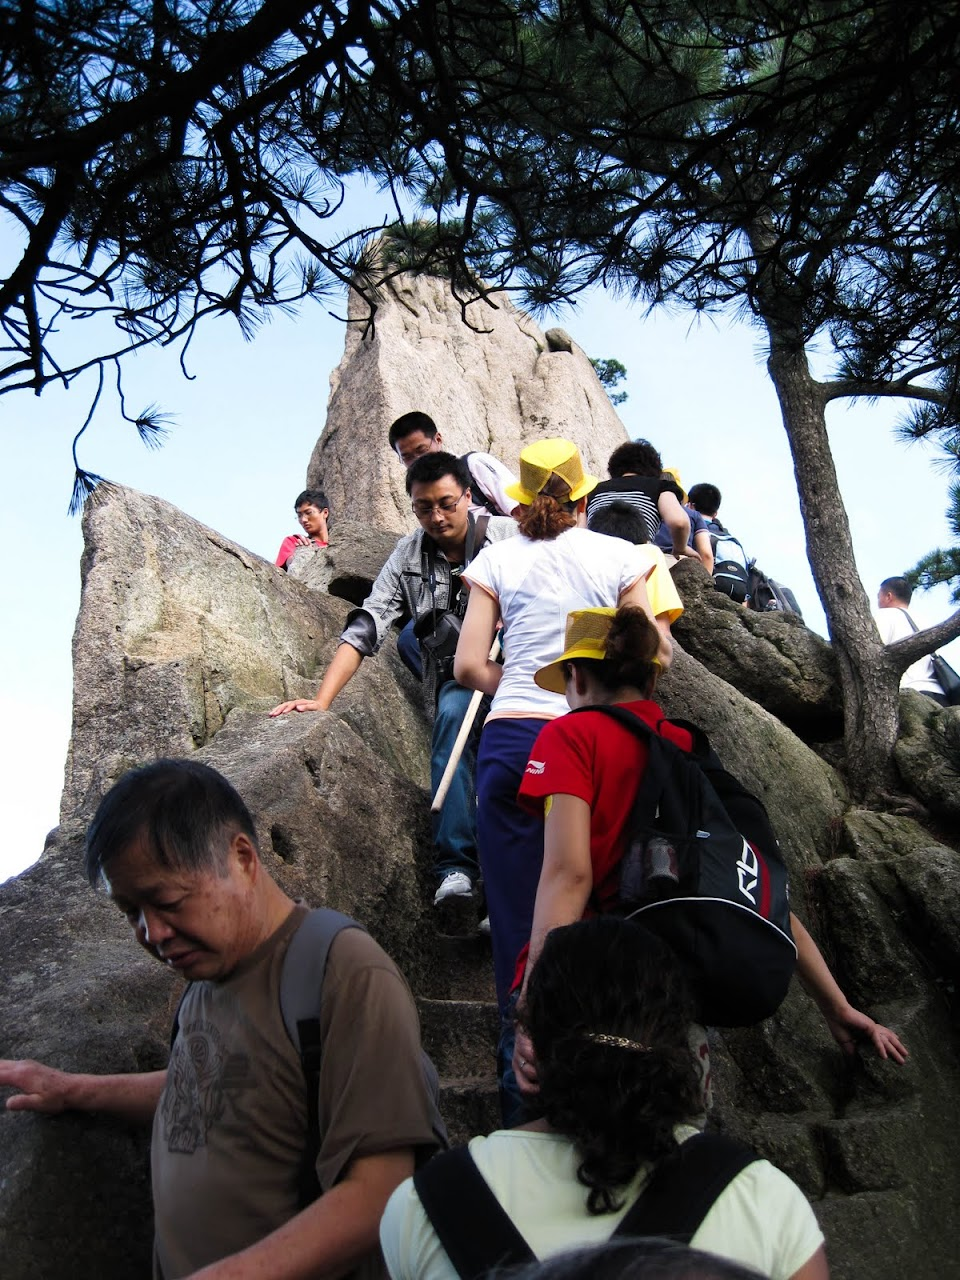 Climbing up and down Huang Shan